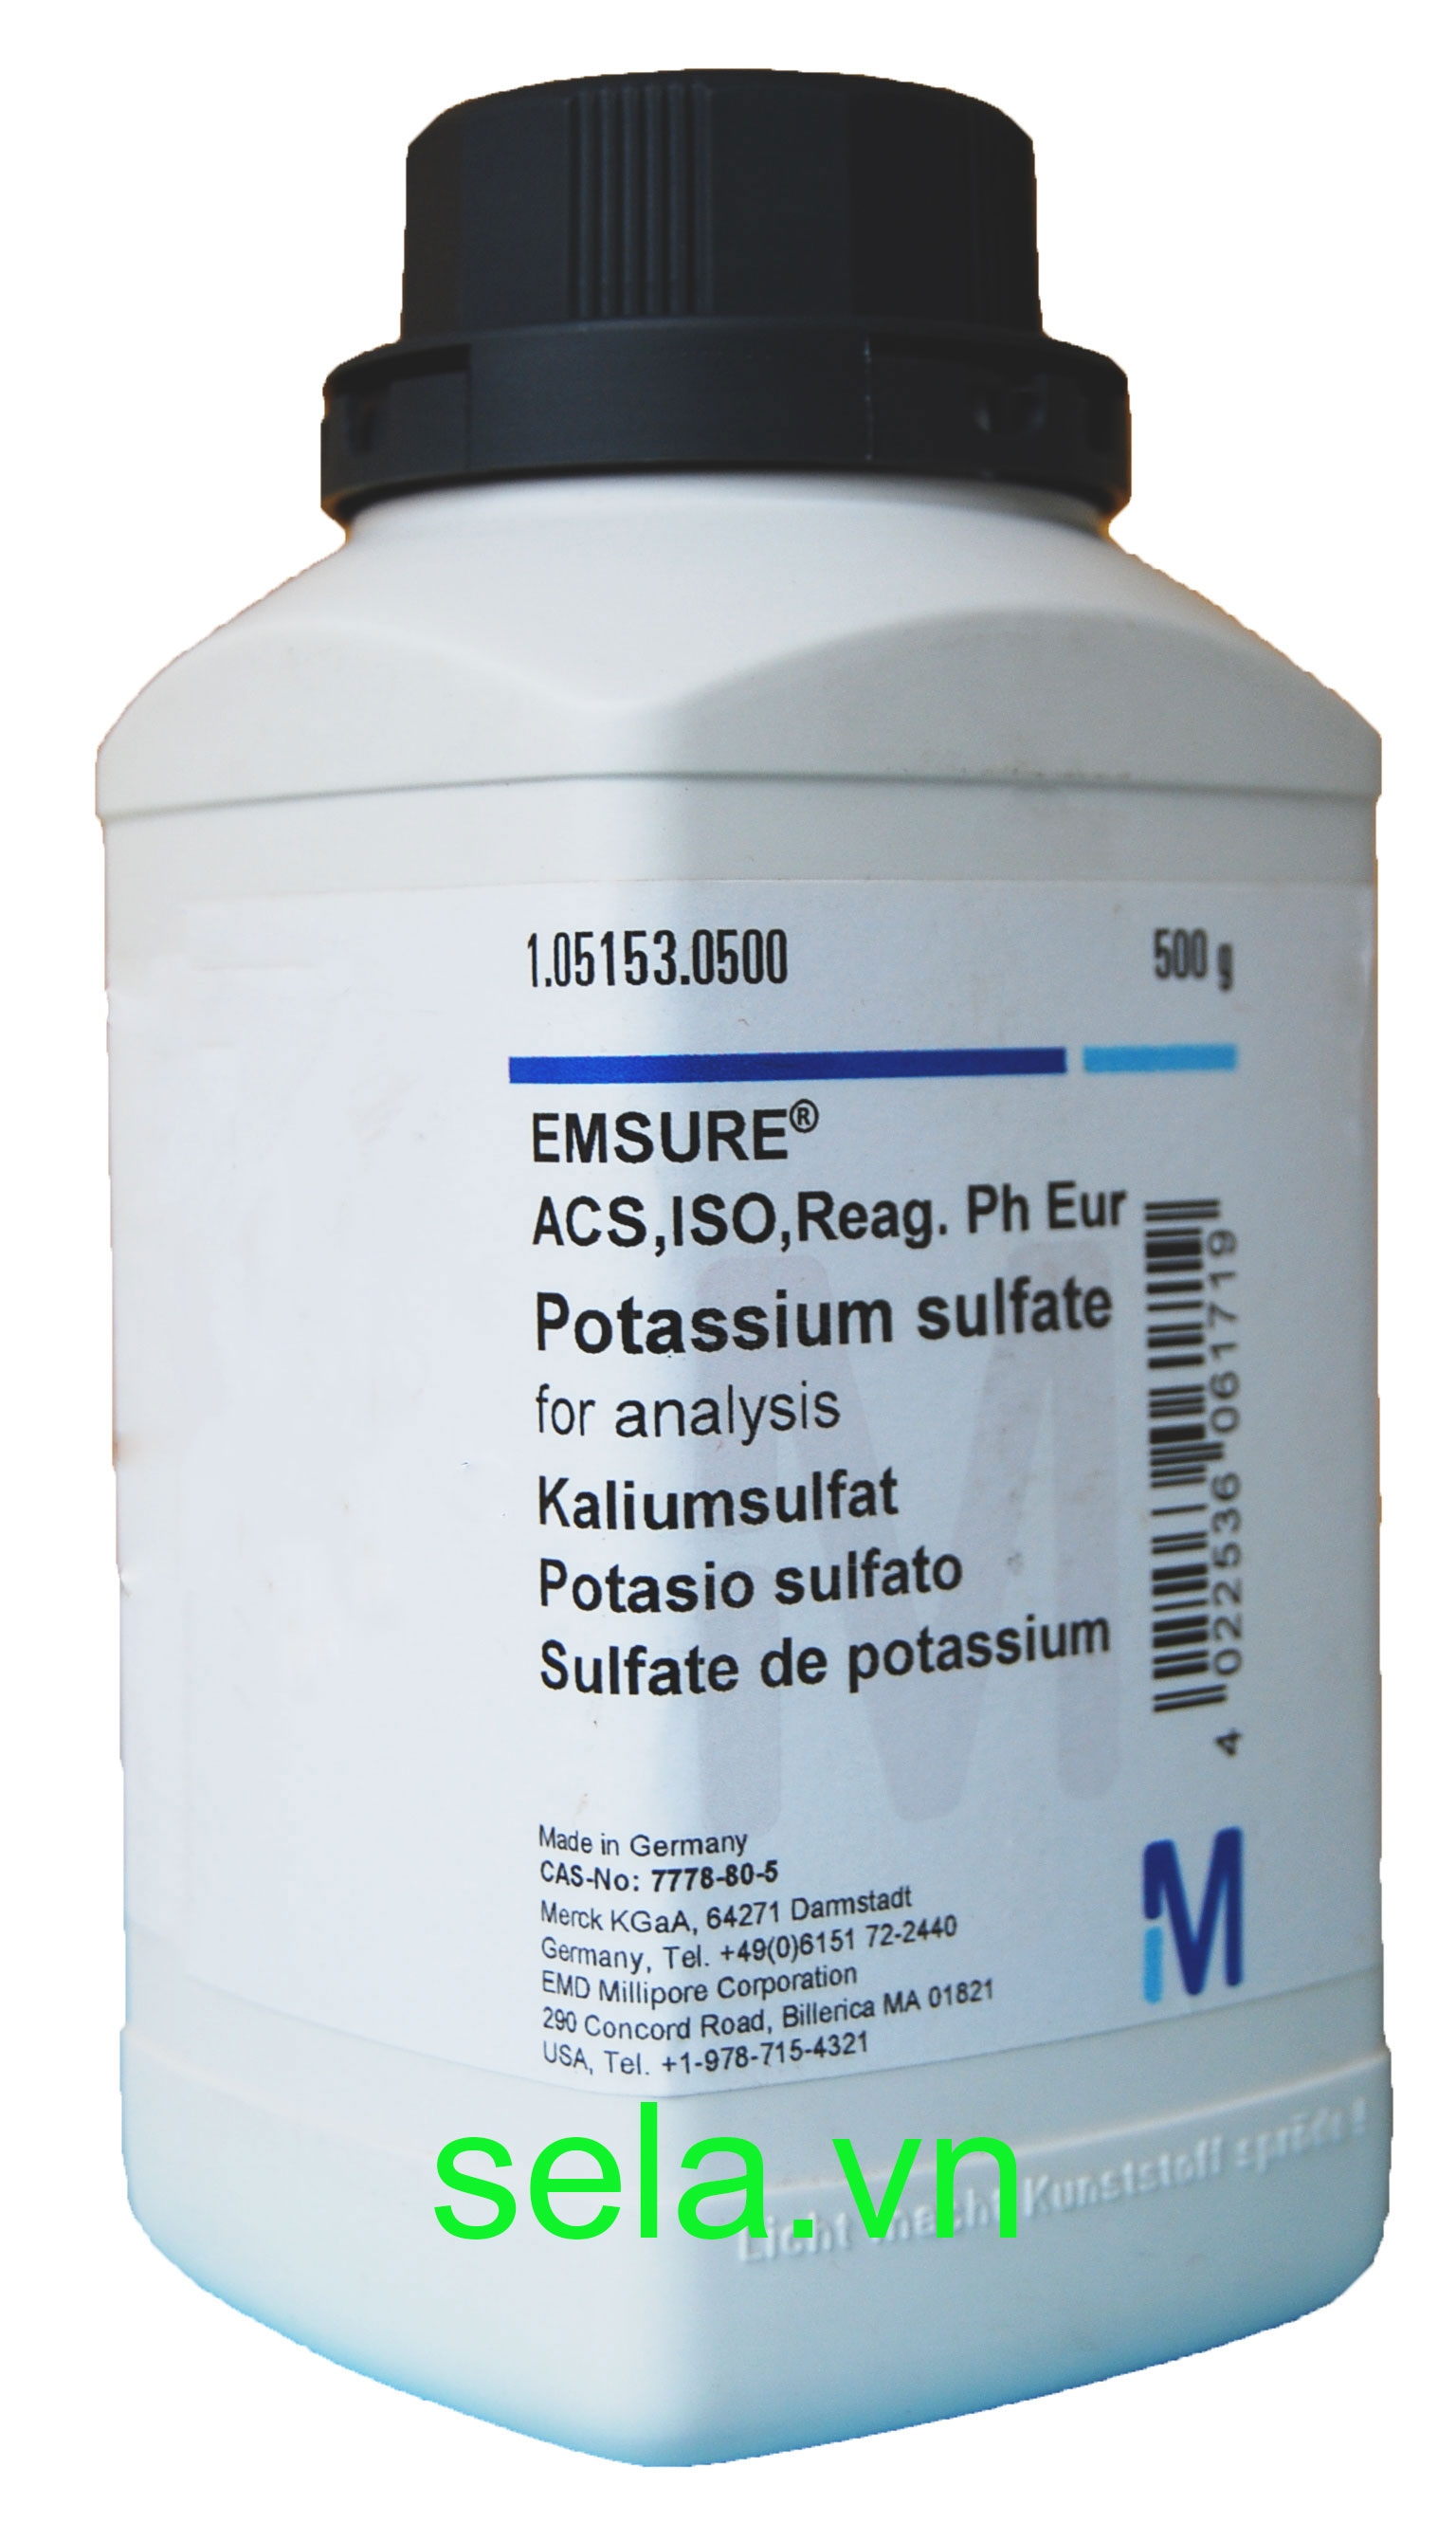 Potassium sulfate for analysis EMSURE® ACS,ISO,Reag. Ph Eur